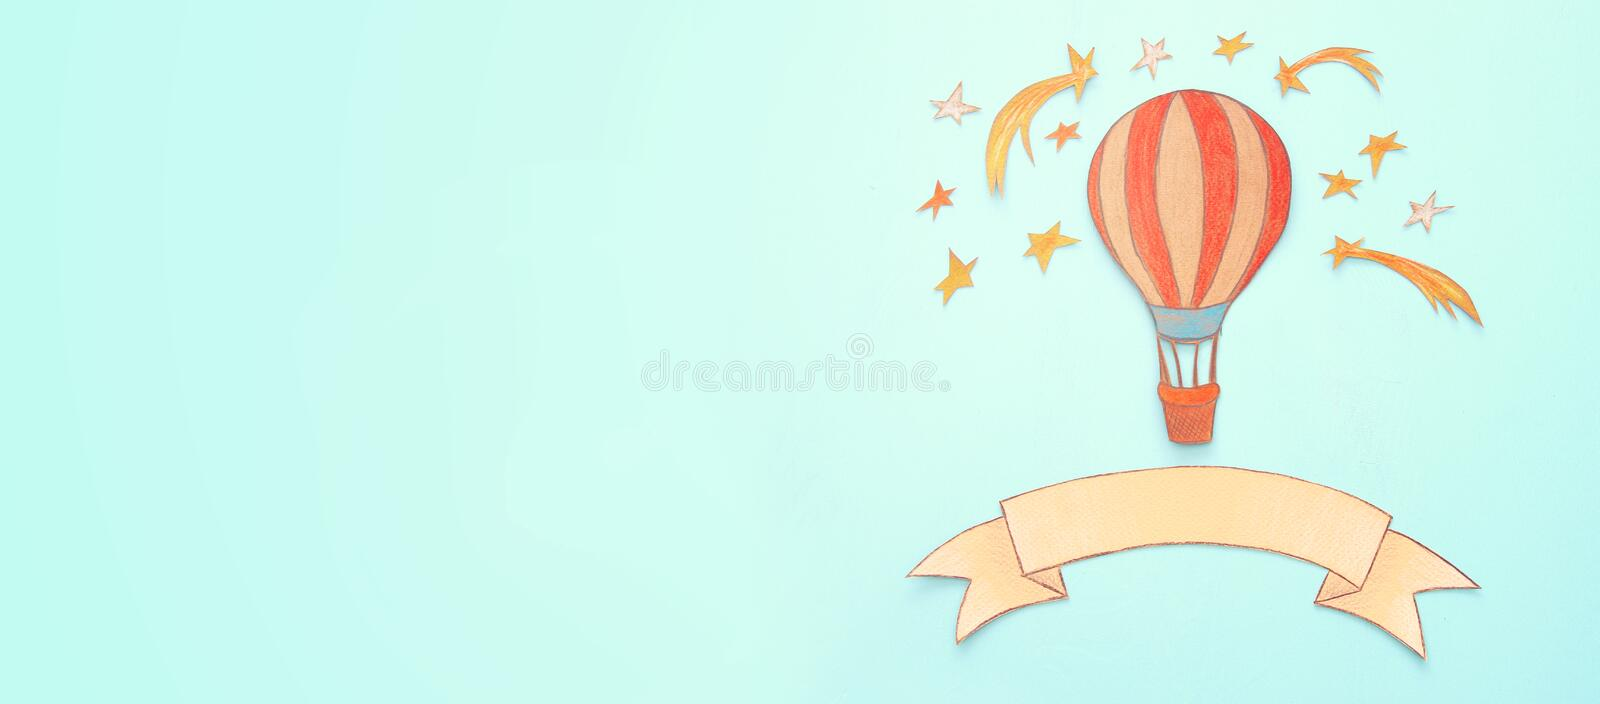 Banner of Hot air balloon, space elements shapes cut from paper and painted over wooden blue background. royalty free stock image